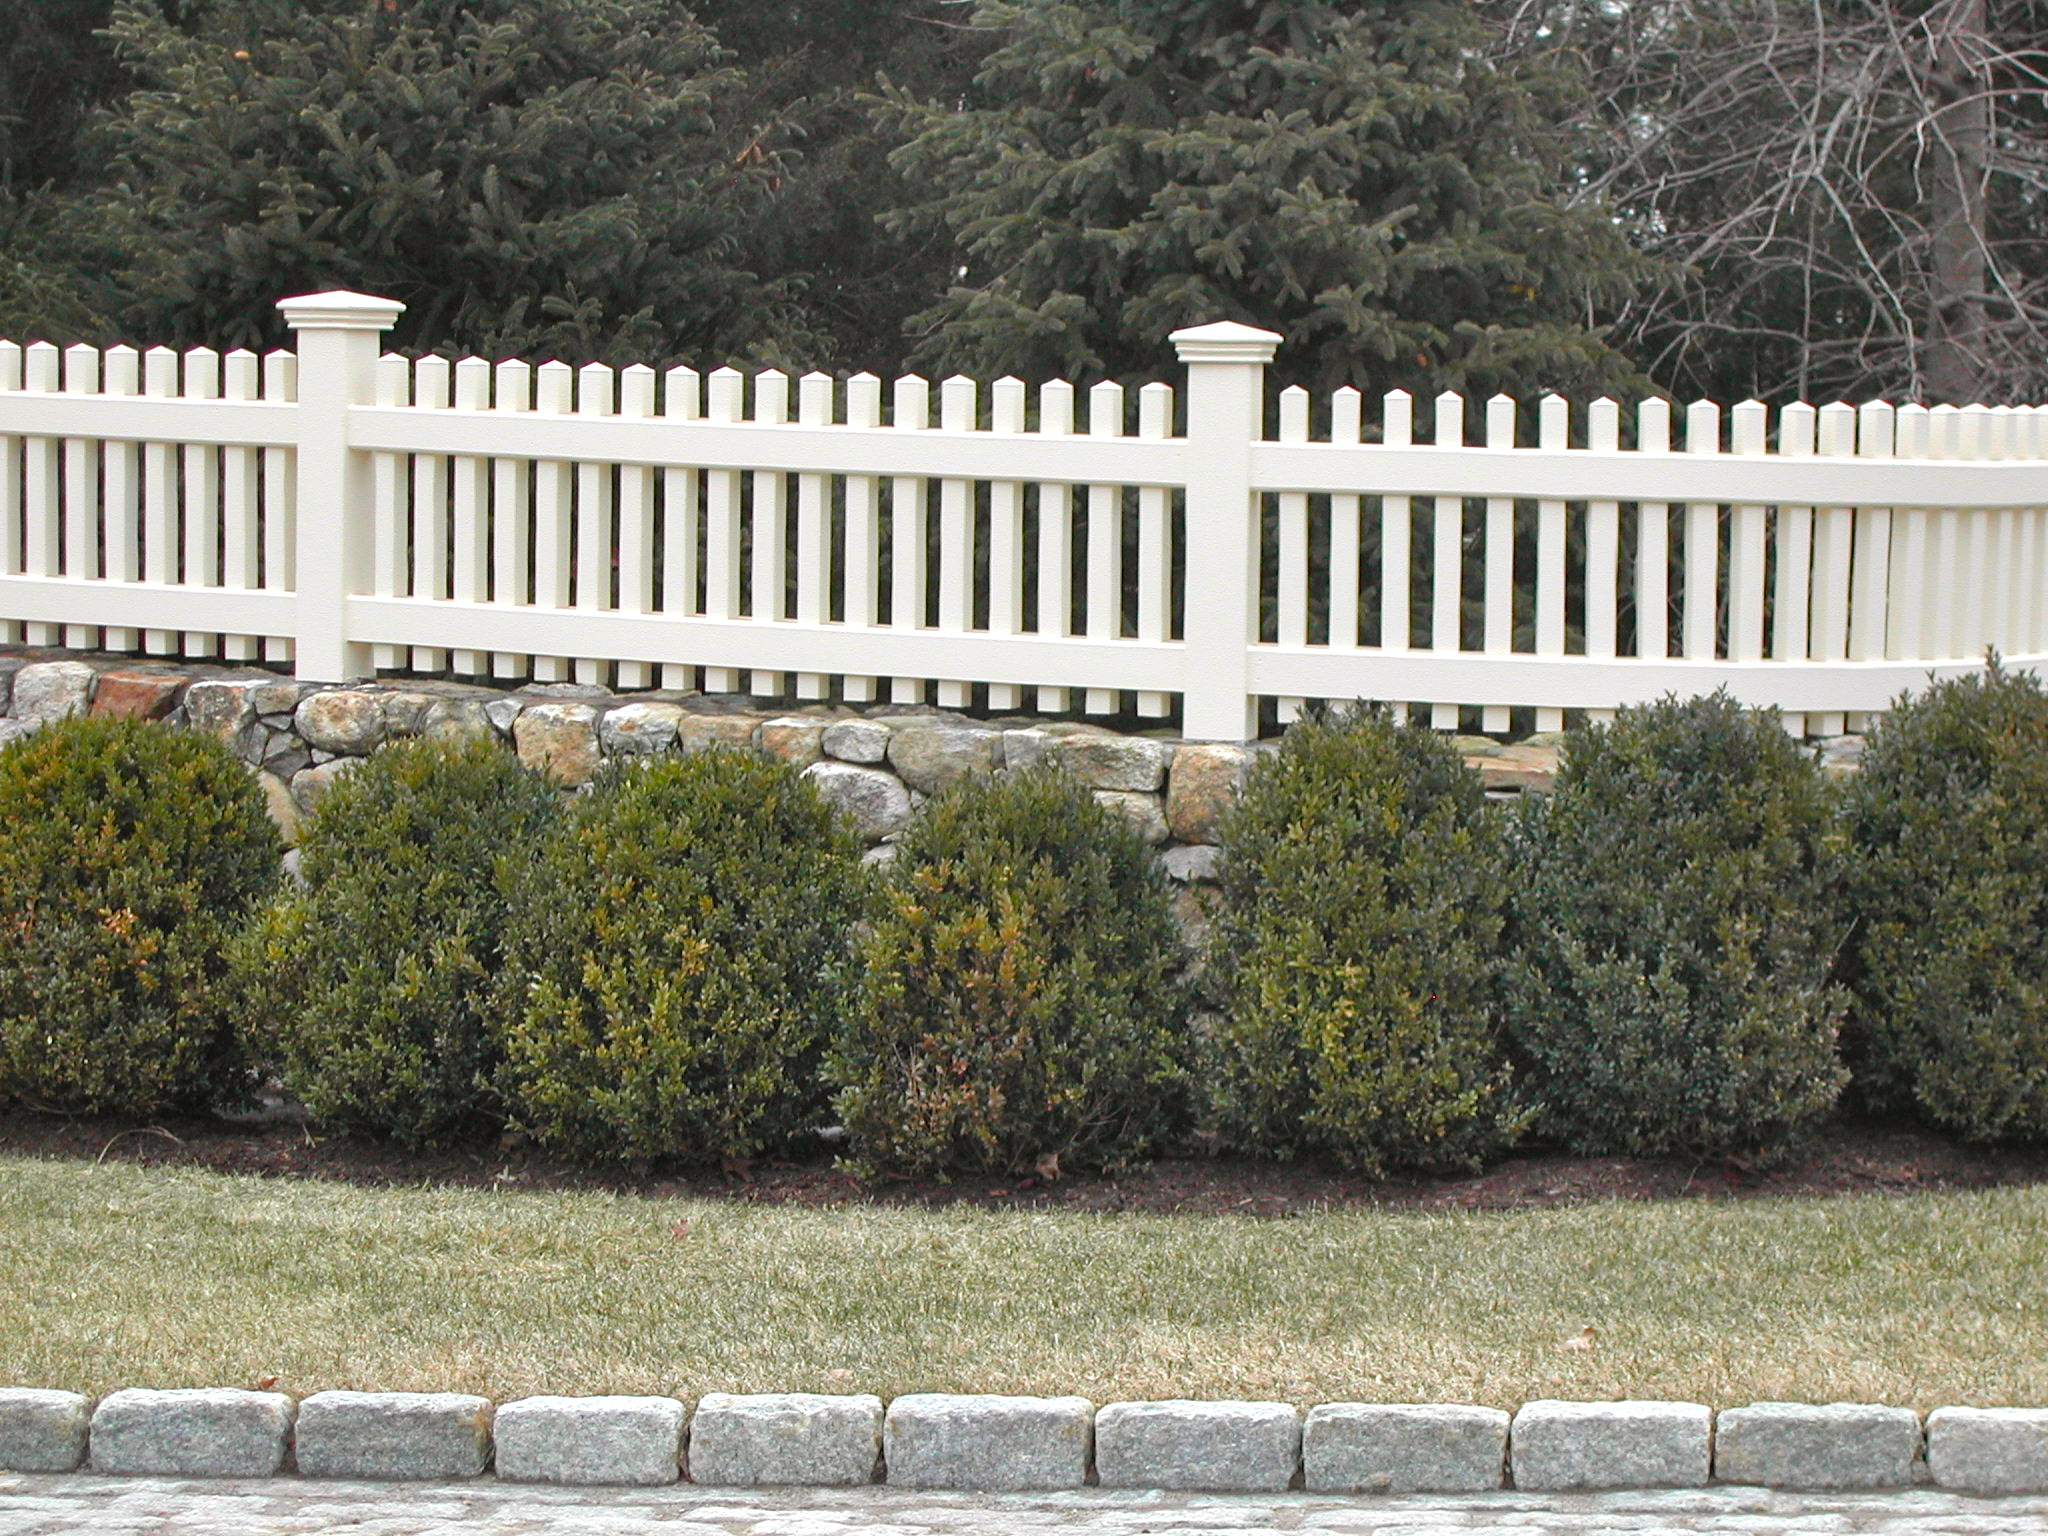 Red Fox Fence PVC Picket Fence